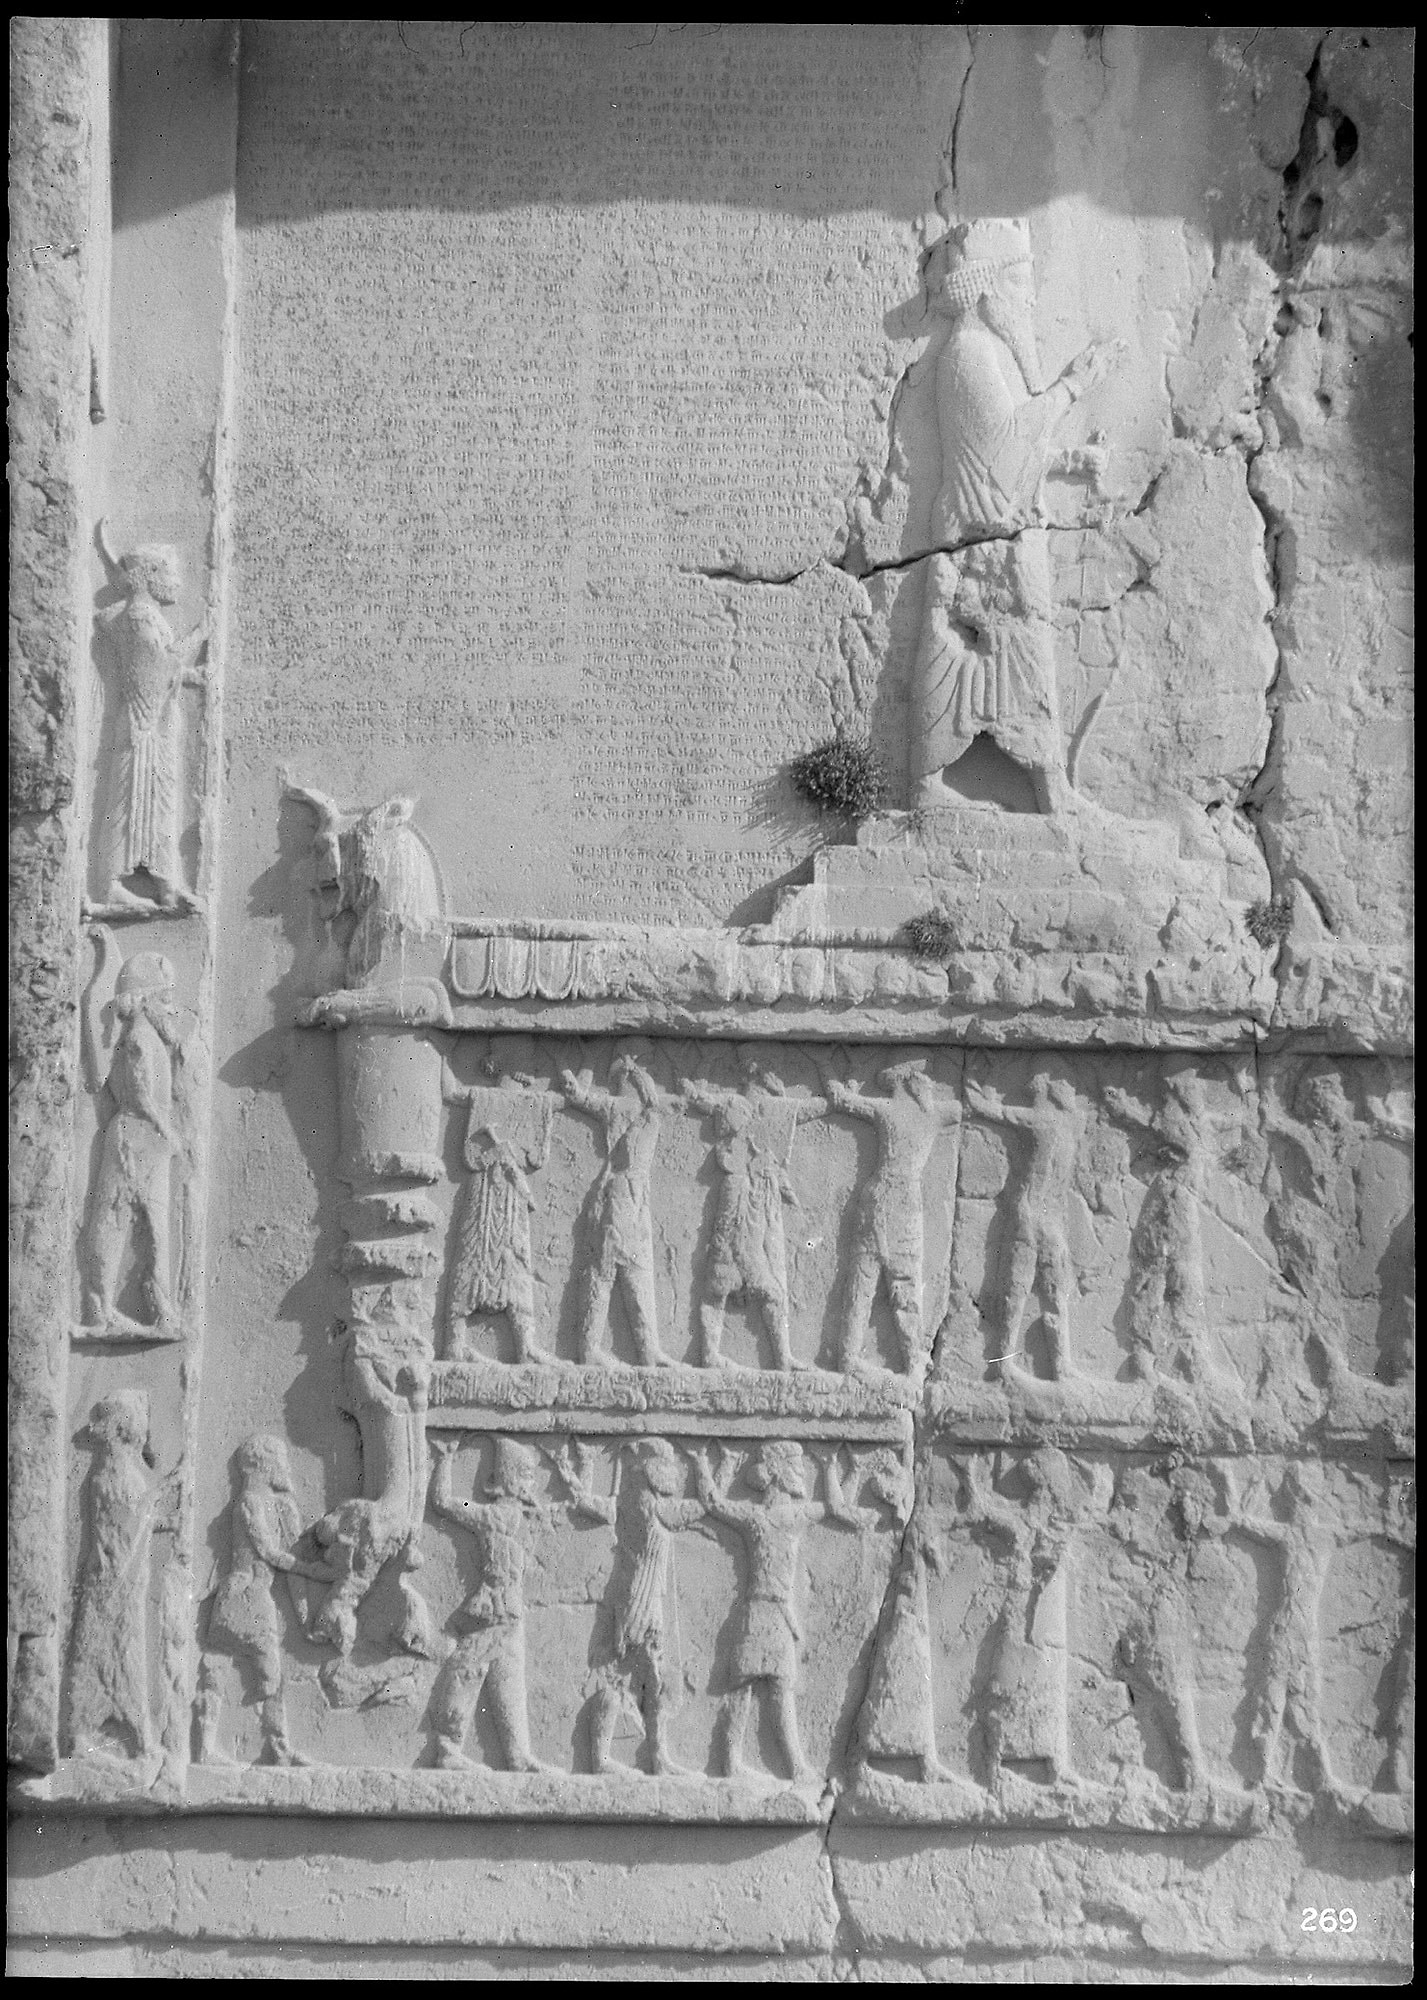 Naqsh-i Rustam (Iran): Achaemenid Tomb of Darius I, Upper Register: Reliefs Depicting Persian Guards and Representatives of all Nations of the Empire, and Inscription, DNa, Old Persian and Elamite Version graphic